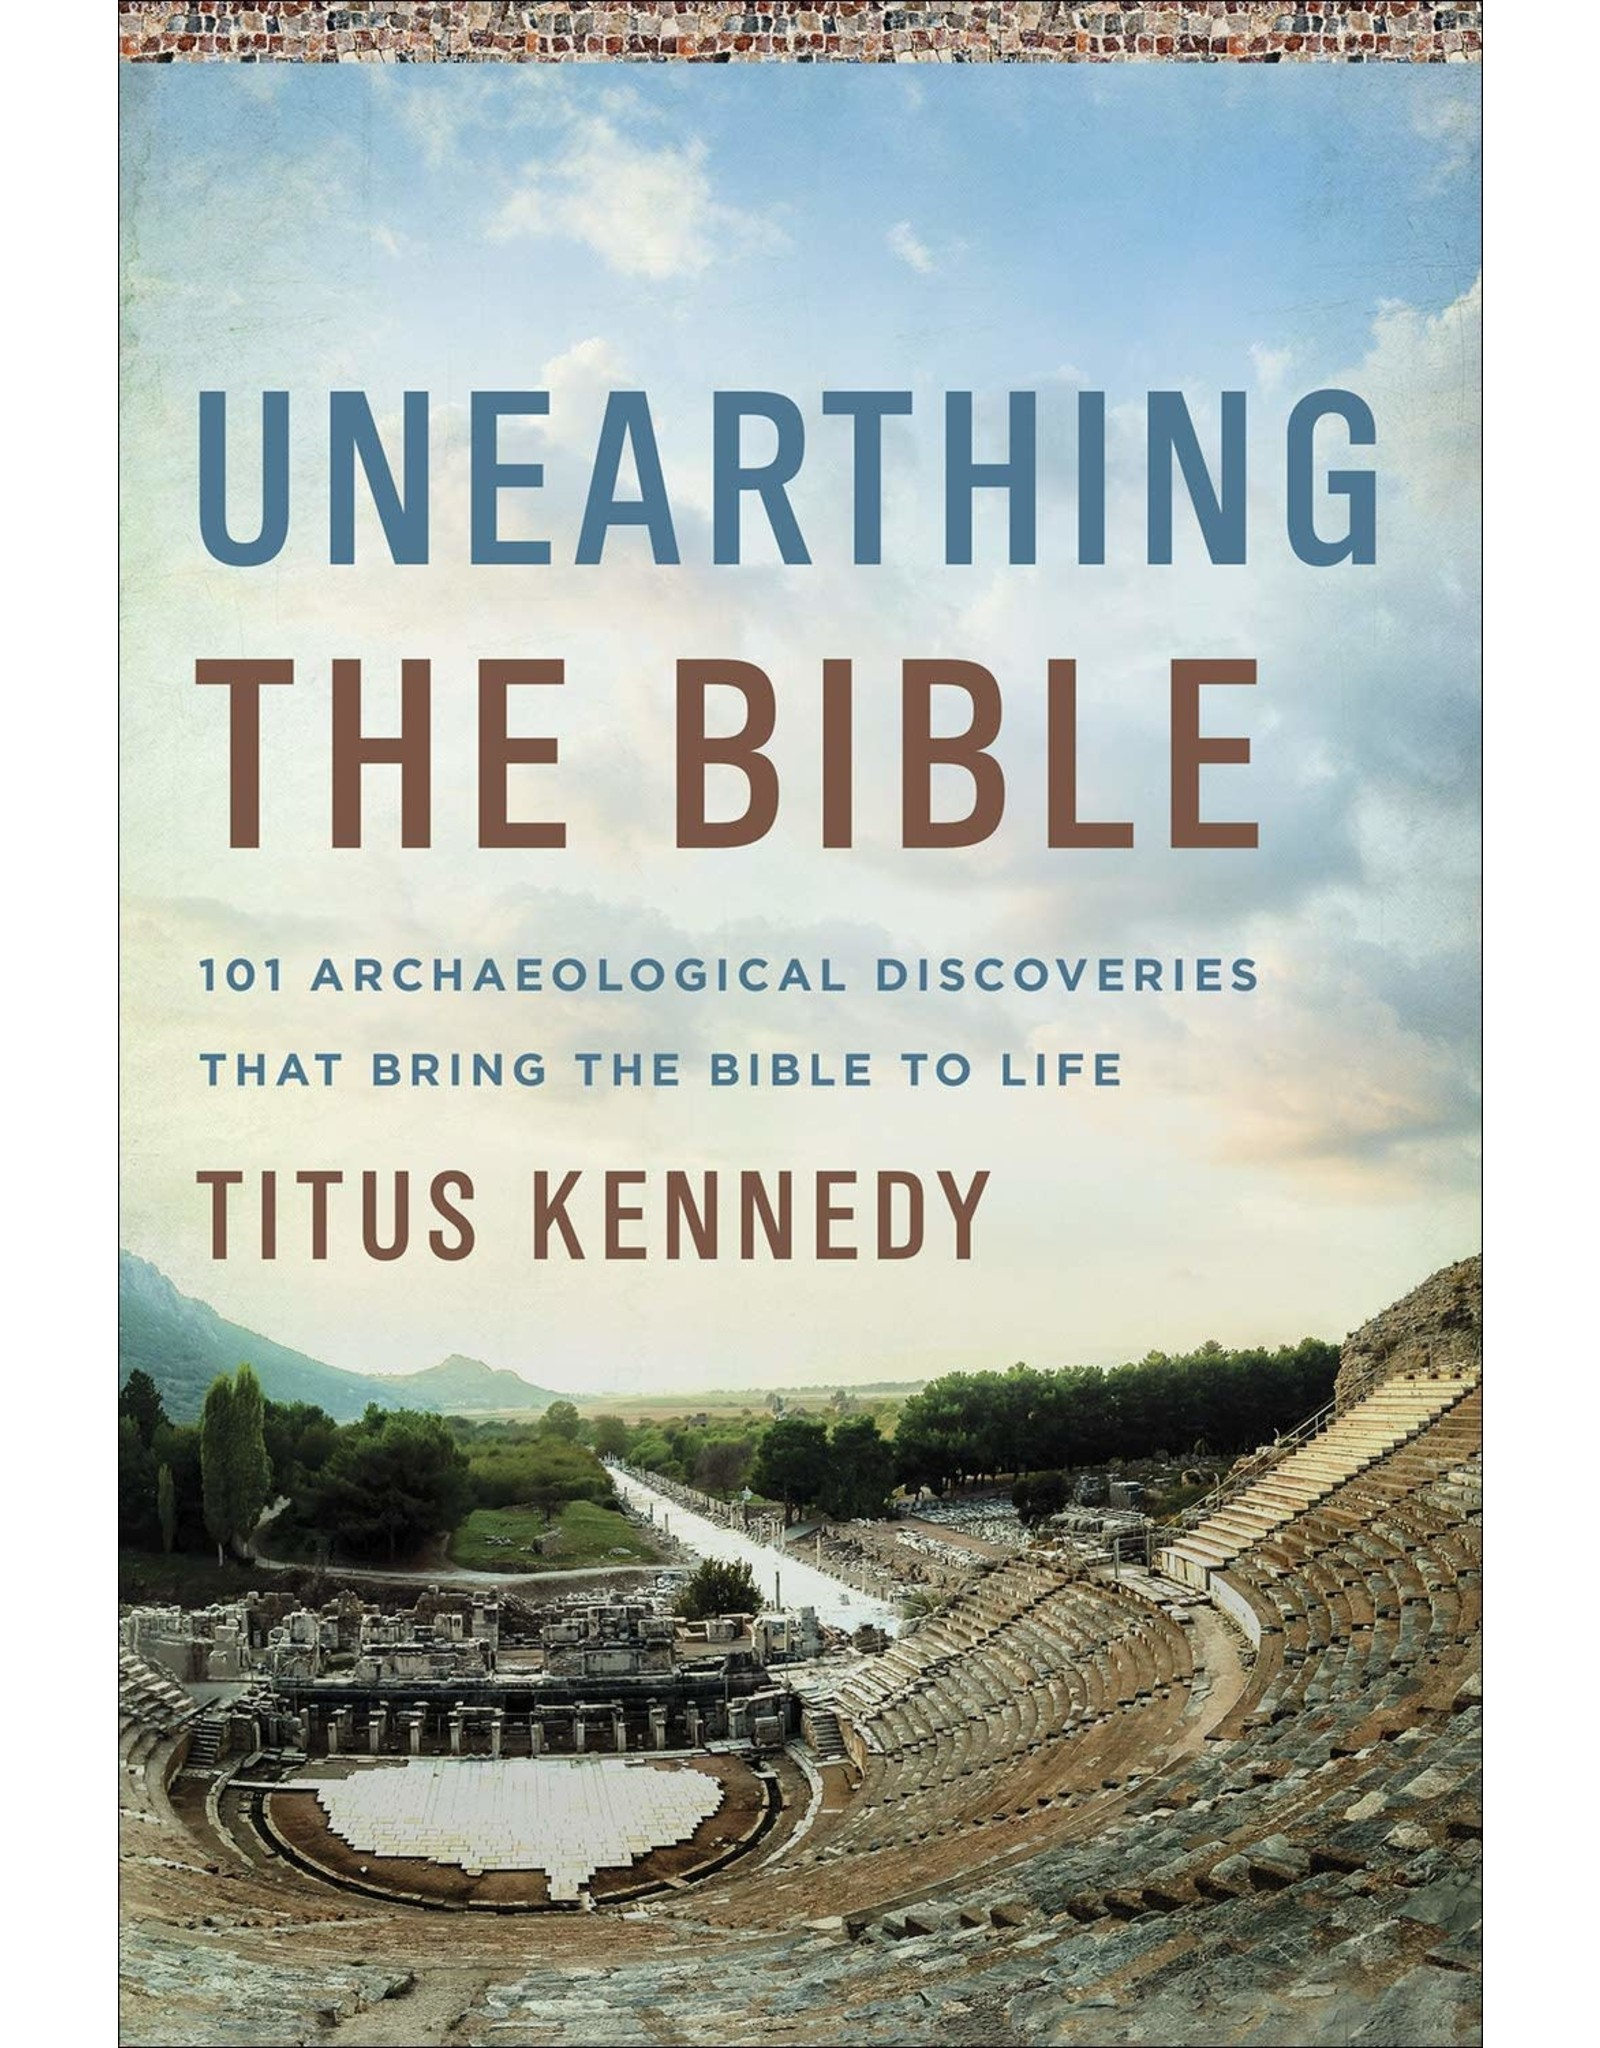 Harvest House Publishers Unearthing the Bible: 101 Archaeological Discoveries That Bring the Bible to Life